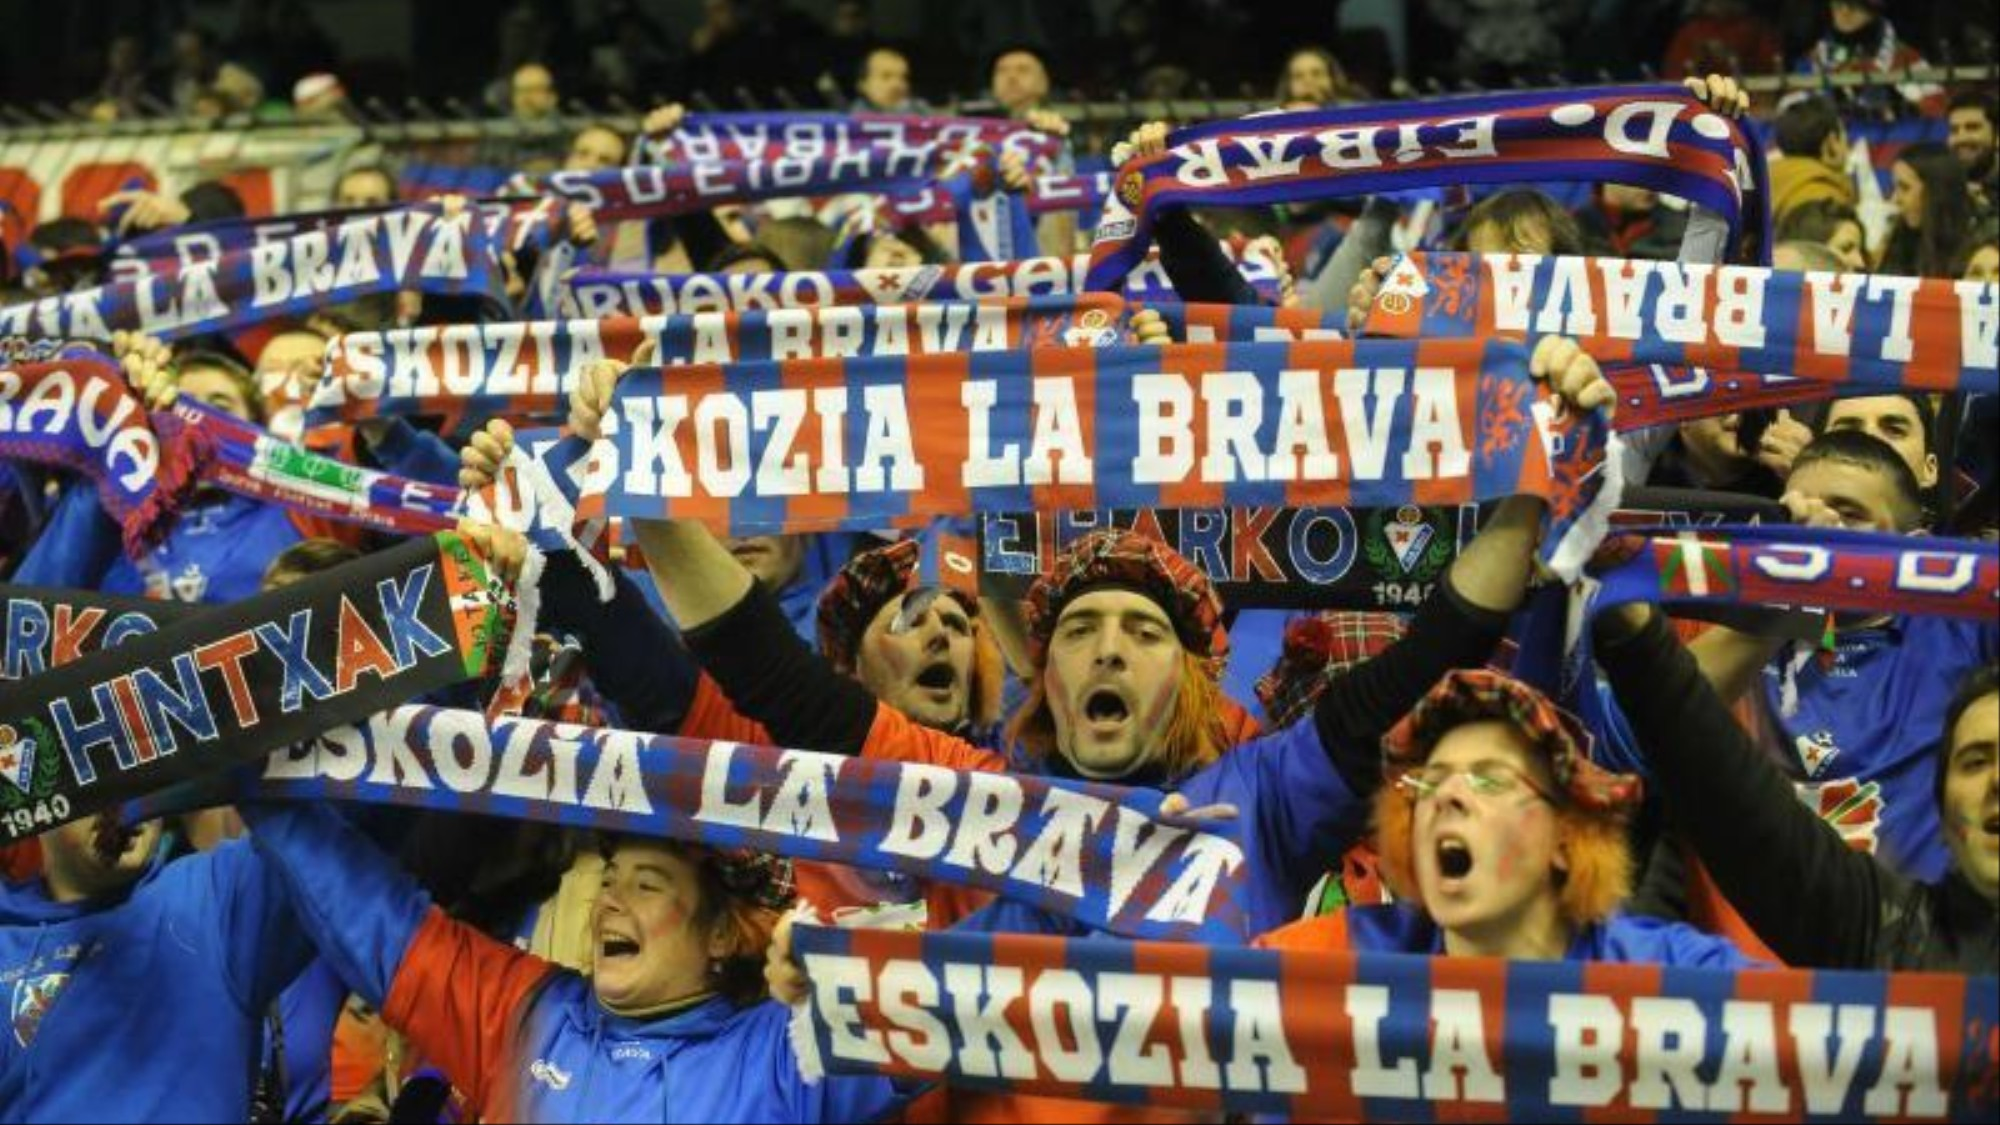 Image result for eskozia la brava